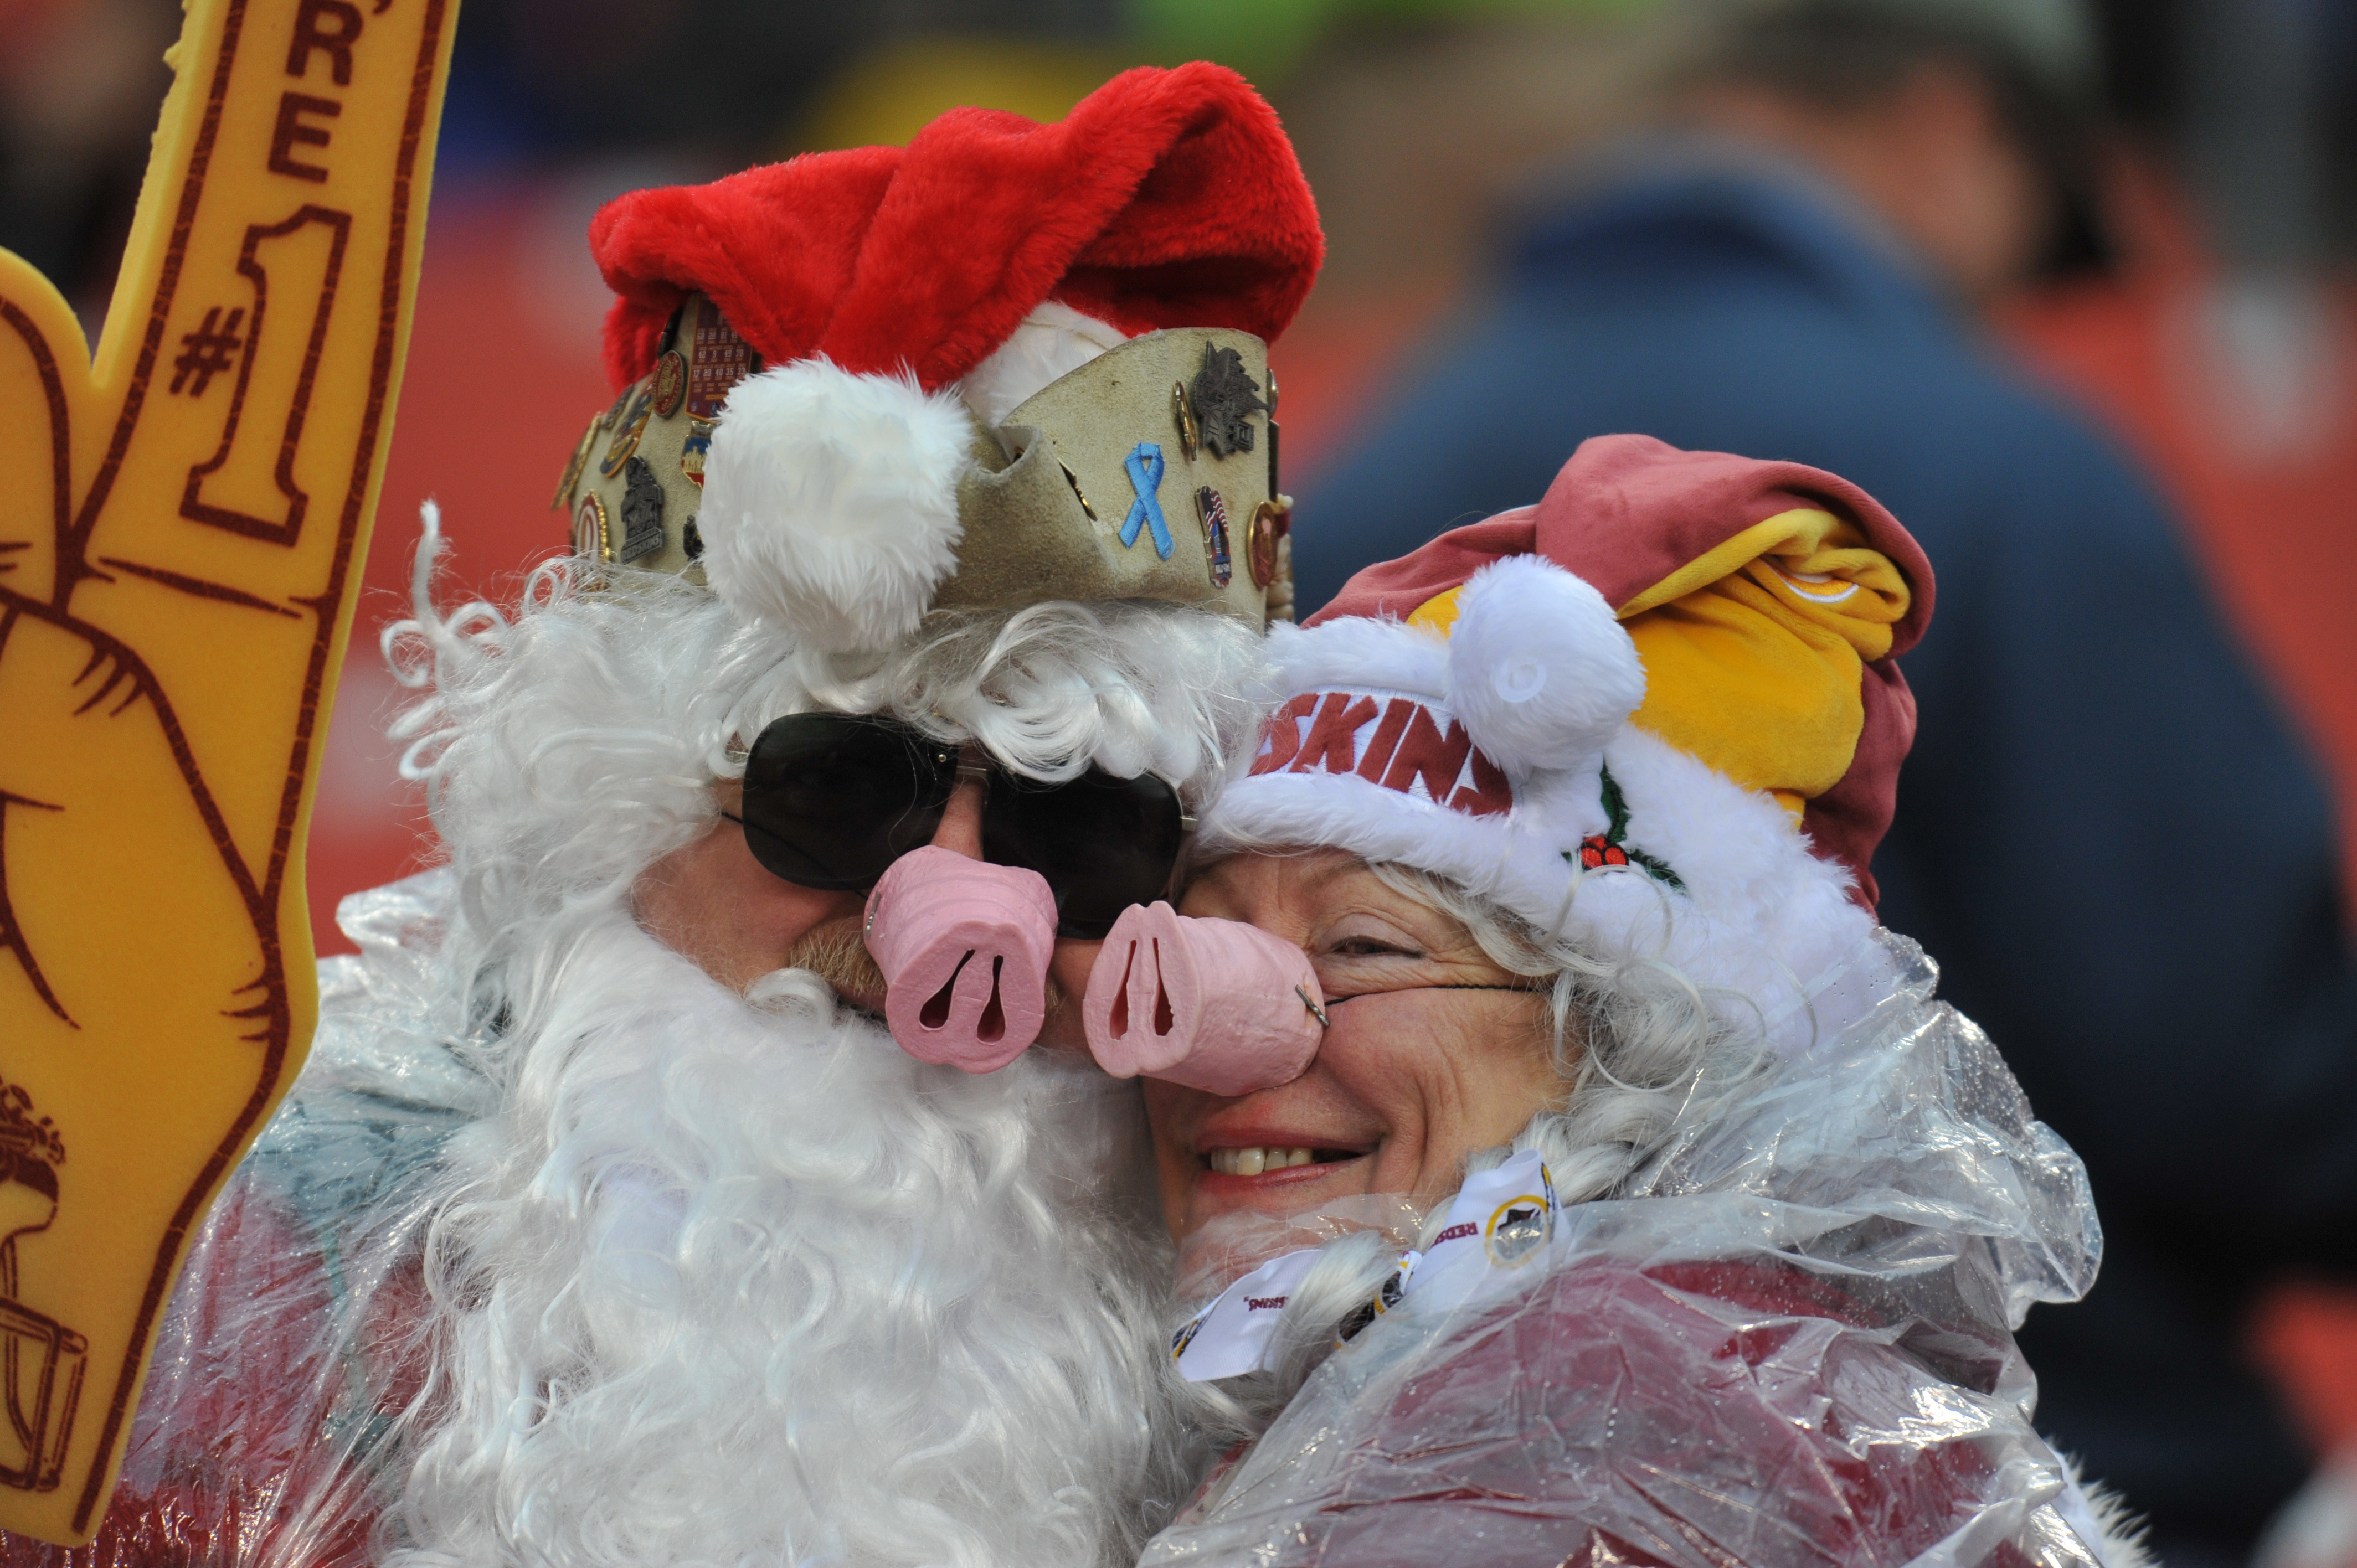 LANDOVER, MD - DECEMBER 12: Fans of the Washington Redskins watch the game against the Tampa Bay Buccaneers at FedExField on December 12, 2010 in Landover, Maryland. The Buccaneers defeated the Redskins 17-16. (Photo by Larry French/Getty Images)